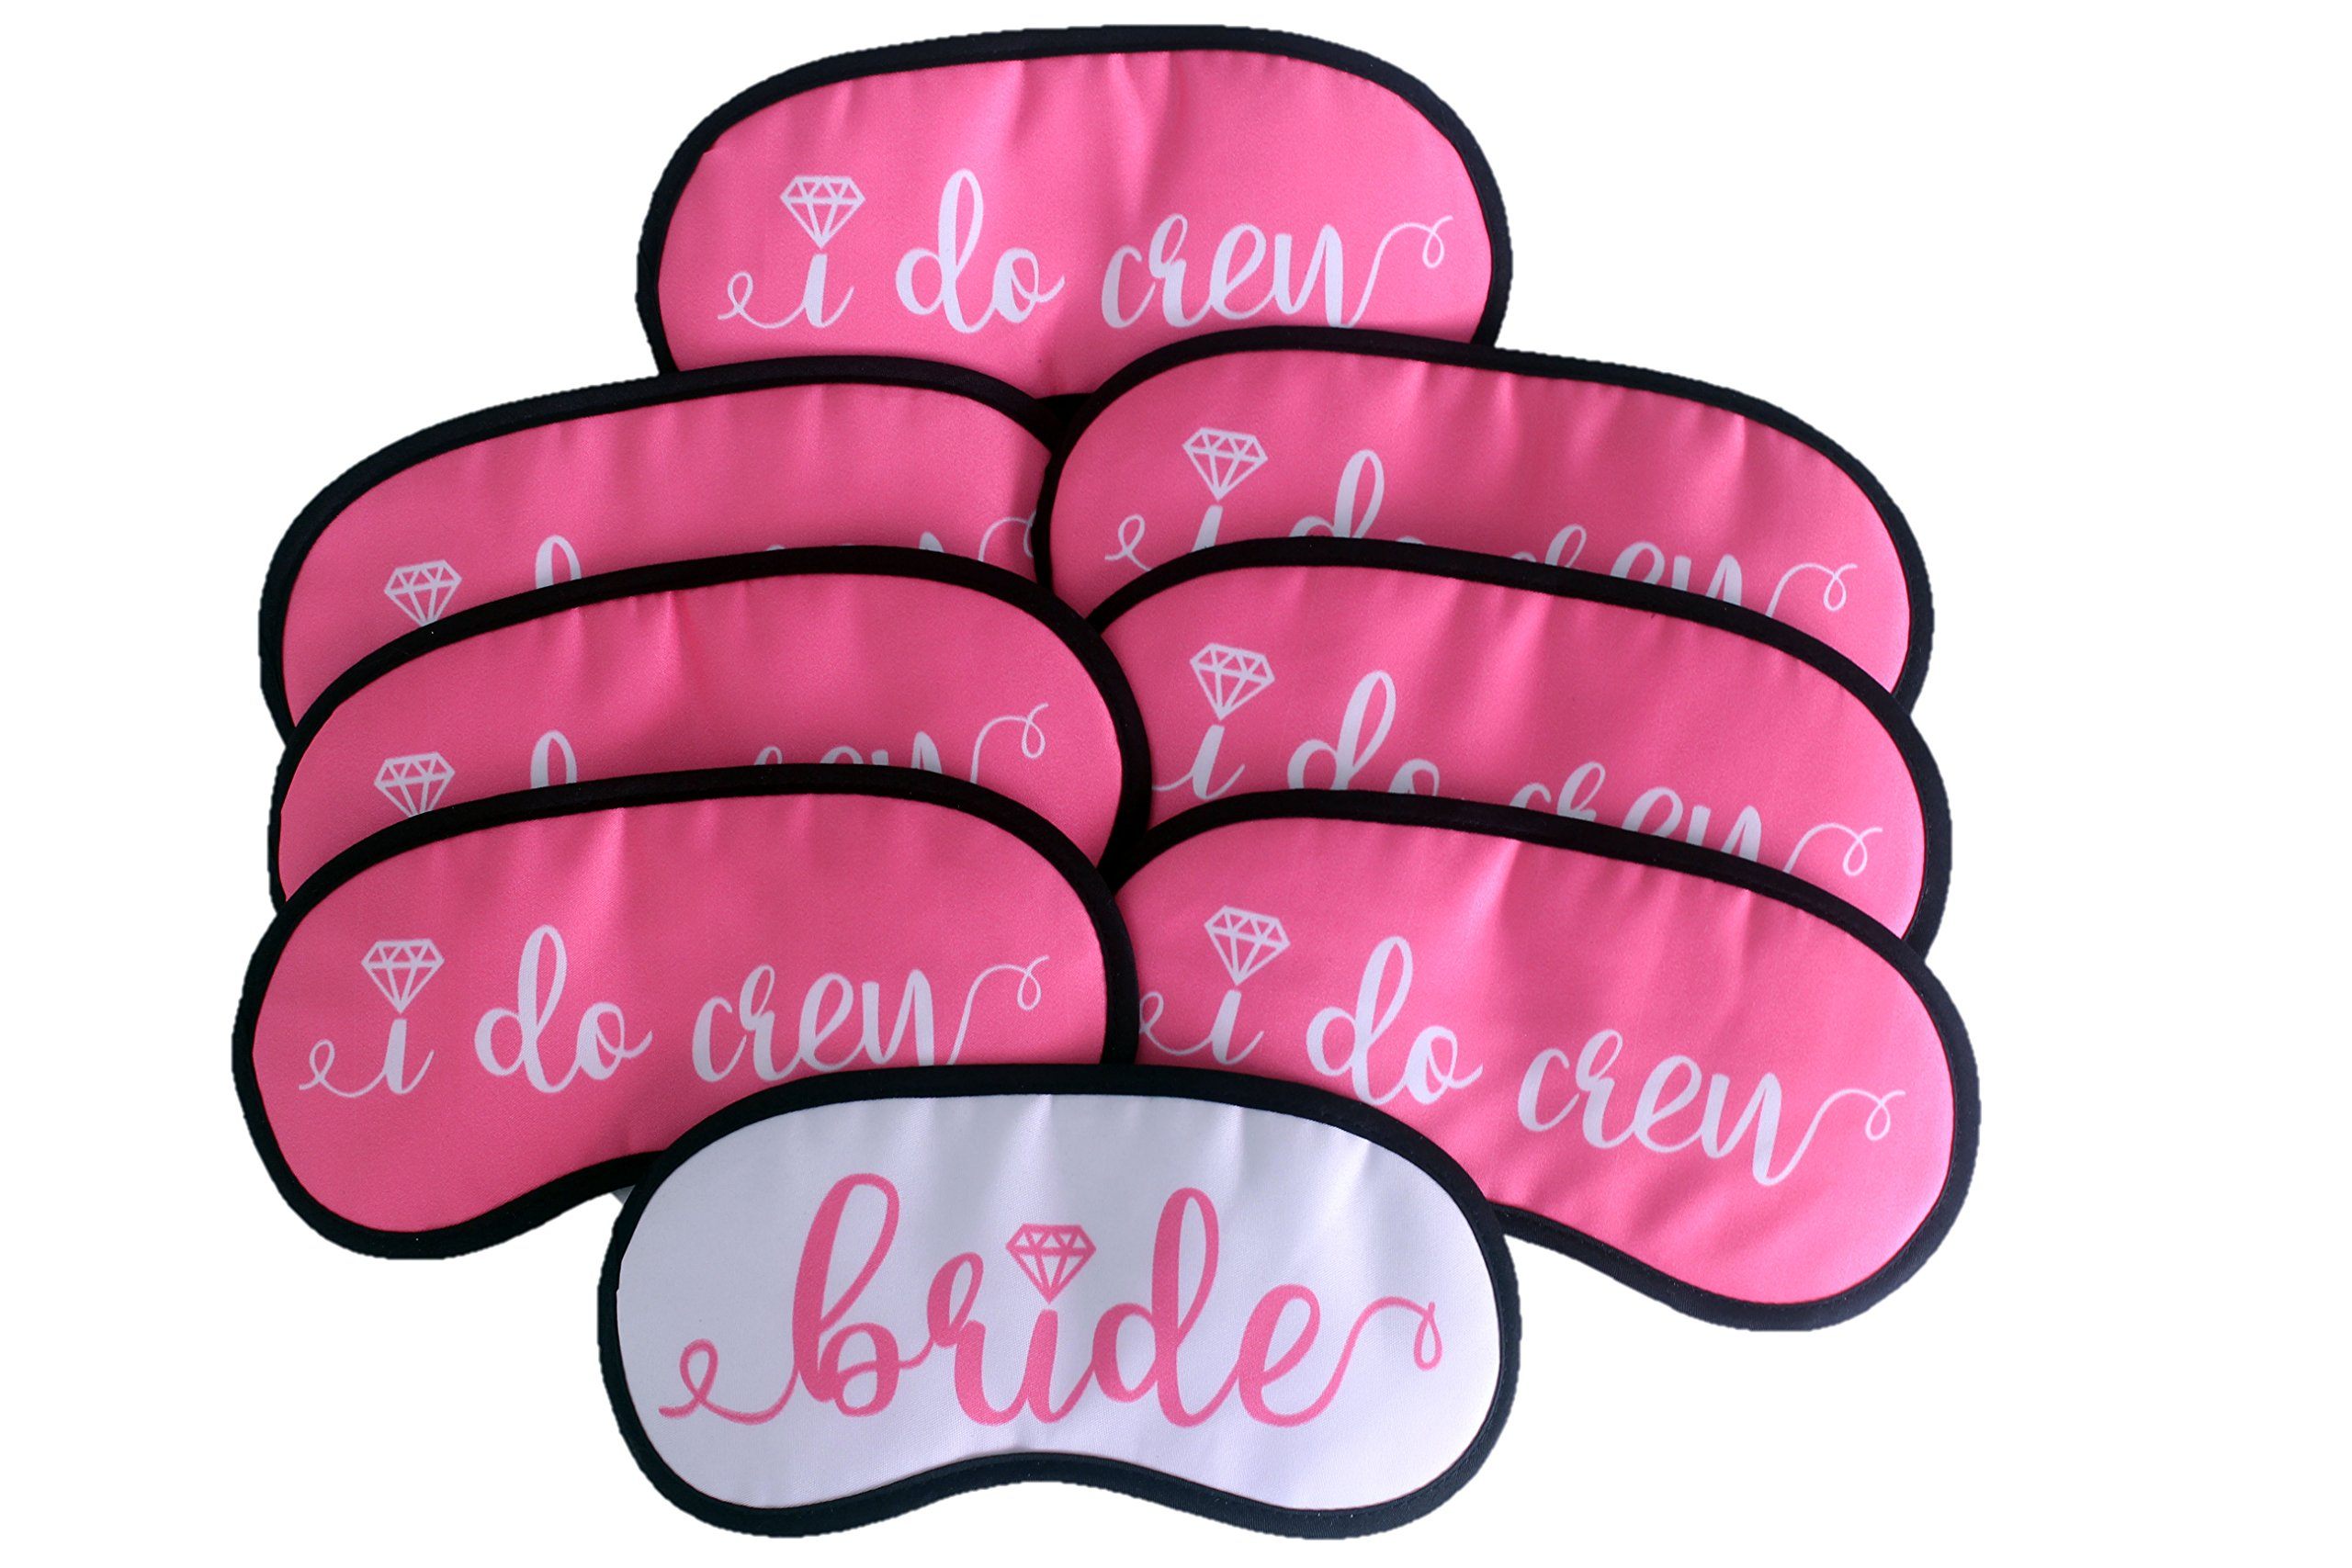 Bride and Bridesmaids Sleep Mask Gift Set : Set of 8 - Bachelorette Party Supplies, Favors, Decorations, Bride Tribe, Bachelorette Party Gifts, Bachelorette Party Accessories, Bride to be Party Pack by Thee Glamour Bride